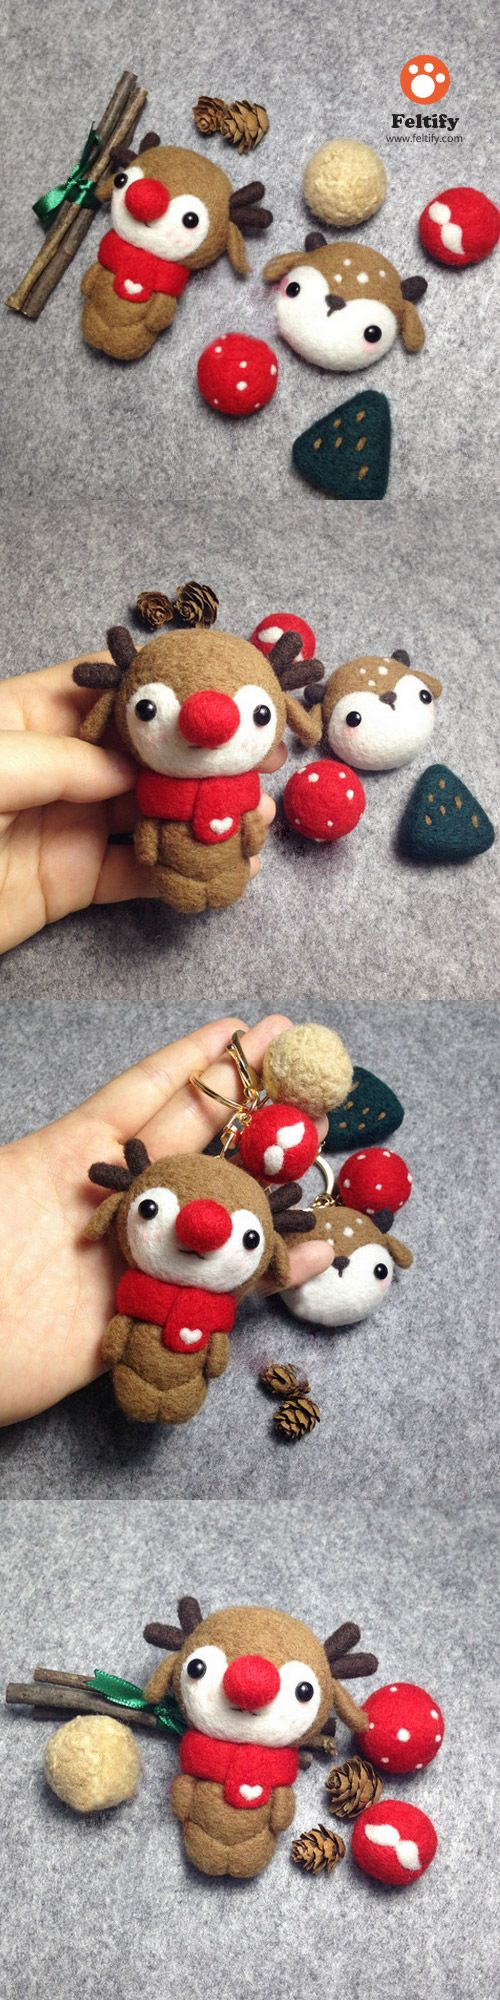 Handmade needle felted felting cute animal project reindeer doll Christmas toy